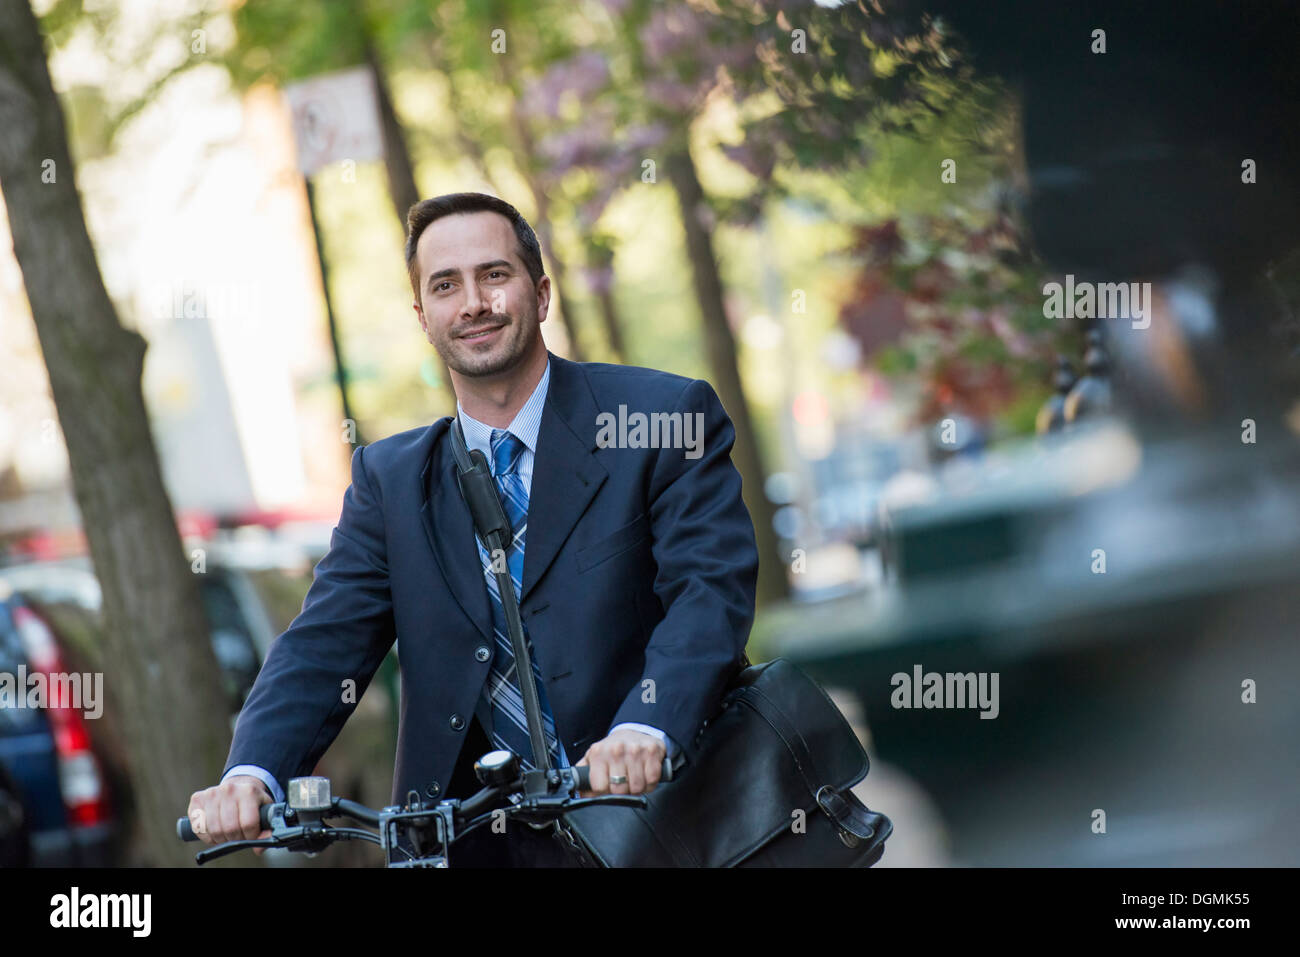 A man in a business suit, outdoors in a park. Sitting on a bicycle. - Stock Image